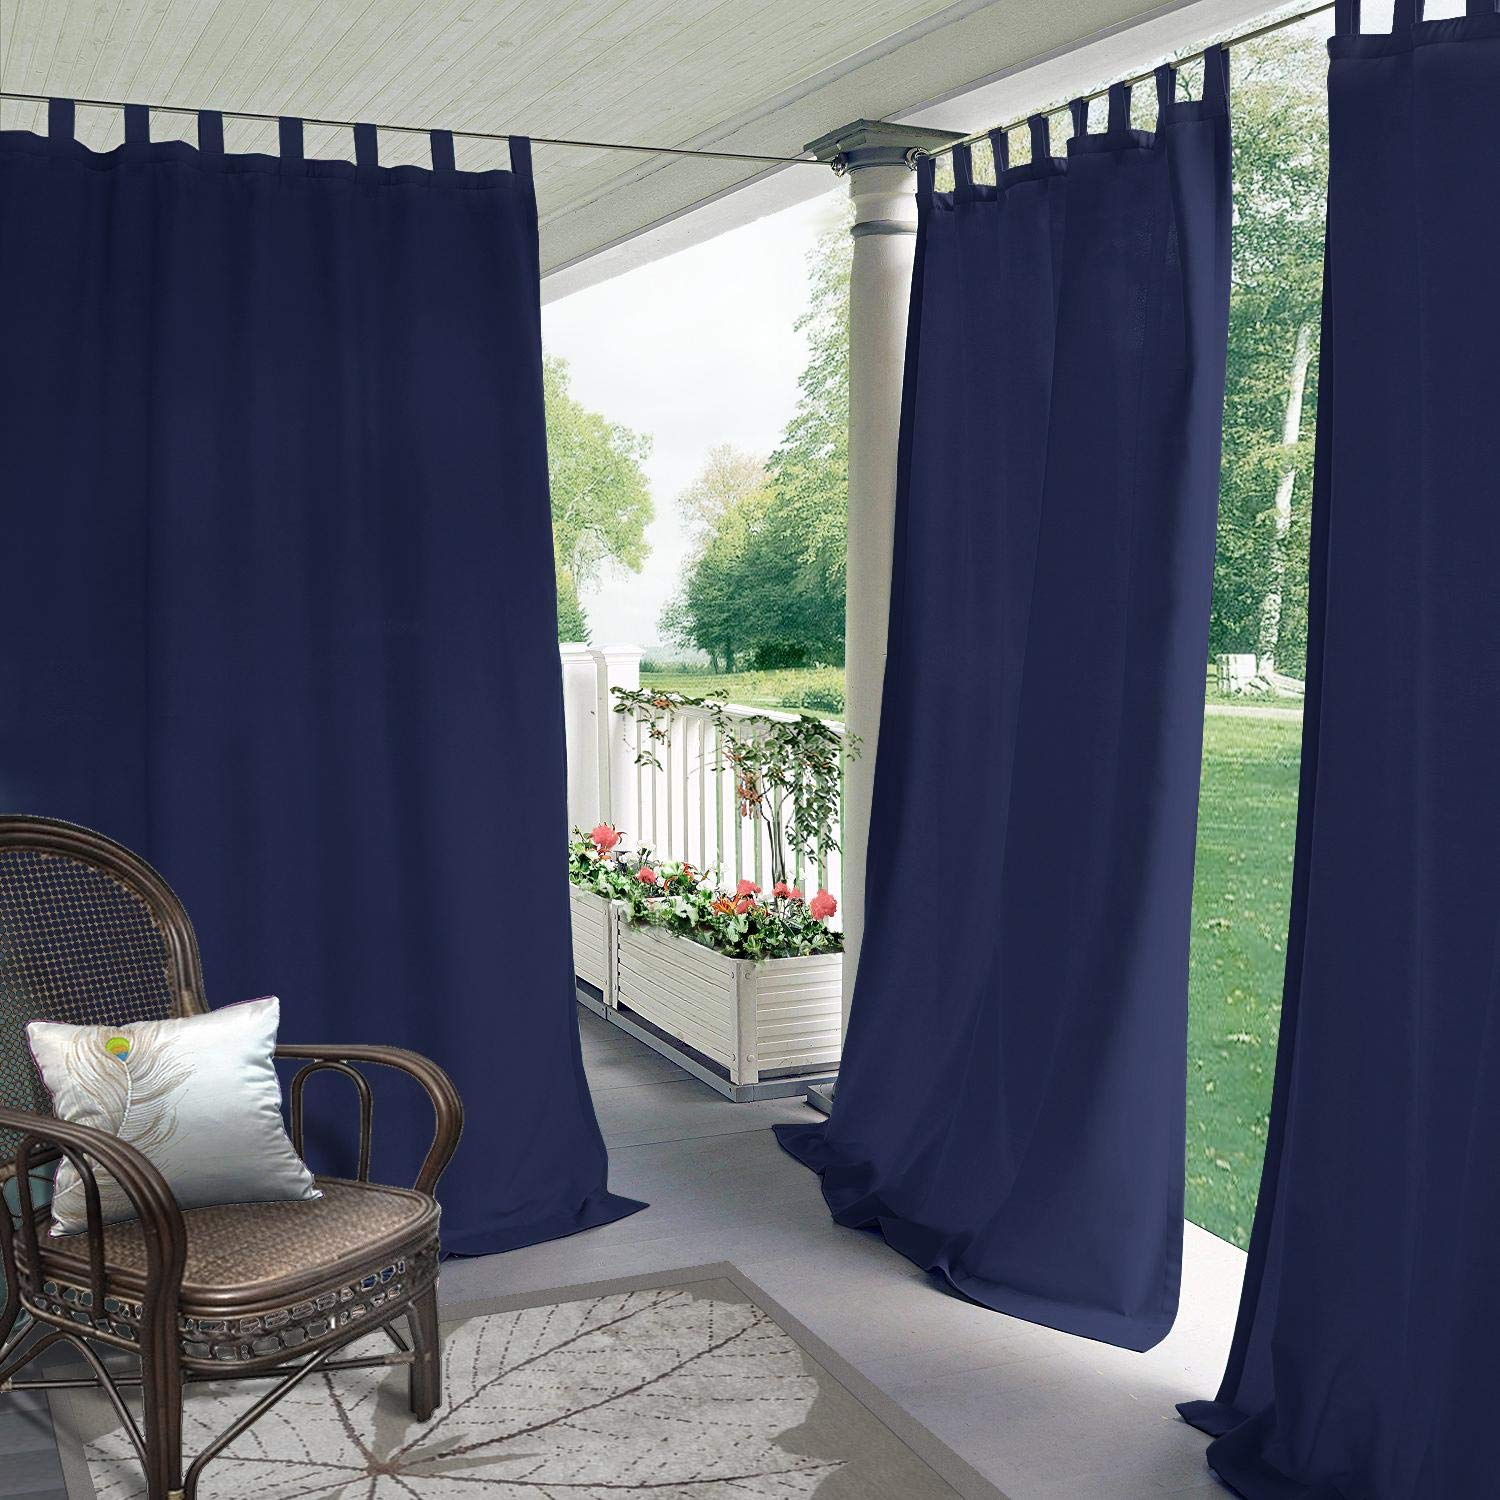 CosyPages Summer Outdoor Curtains for Front Porch Pergola Cabana Covered Patio Gazebo Dock and Beach Home Noise Reducing Heat Insulated TAP TOP 50'' W x 84'' L (1 Panel) Navy